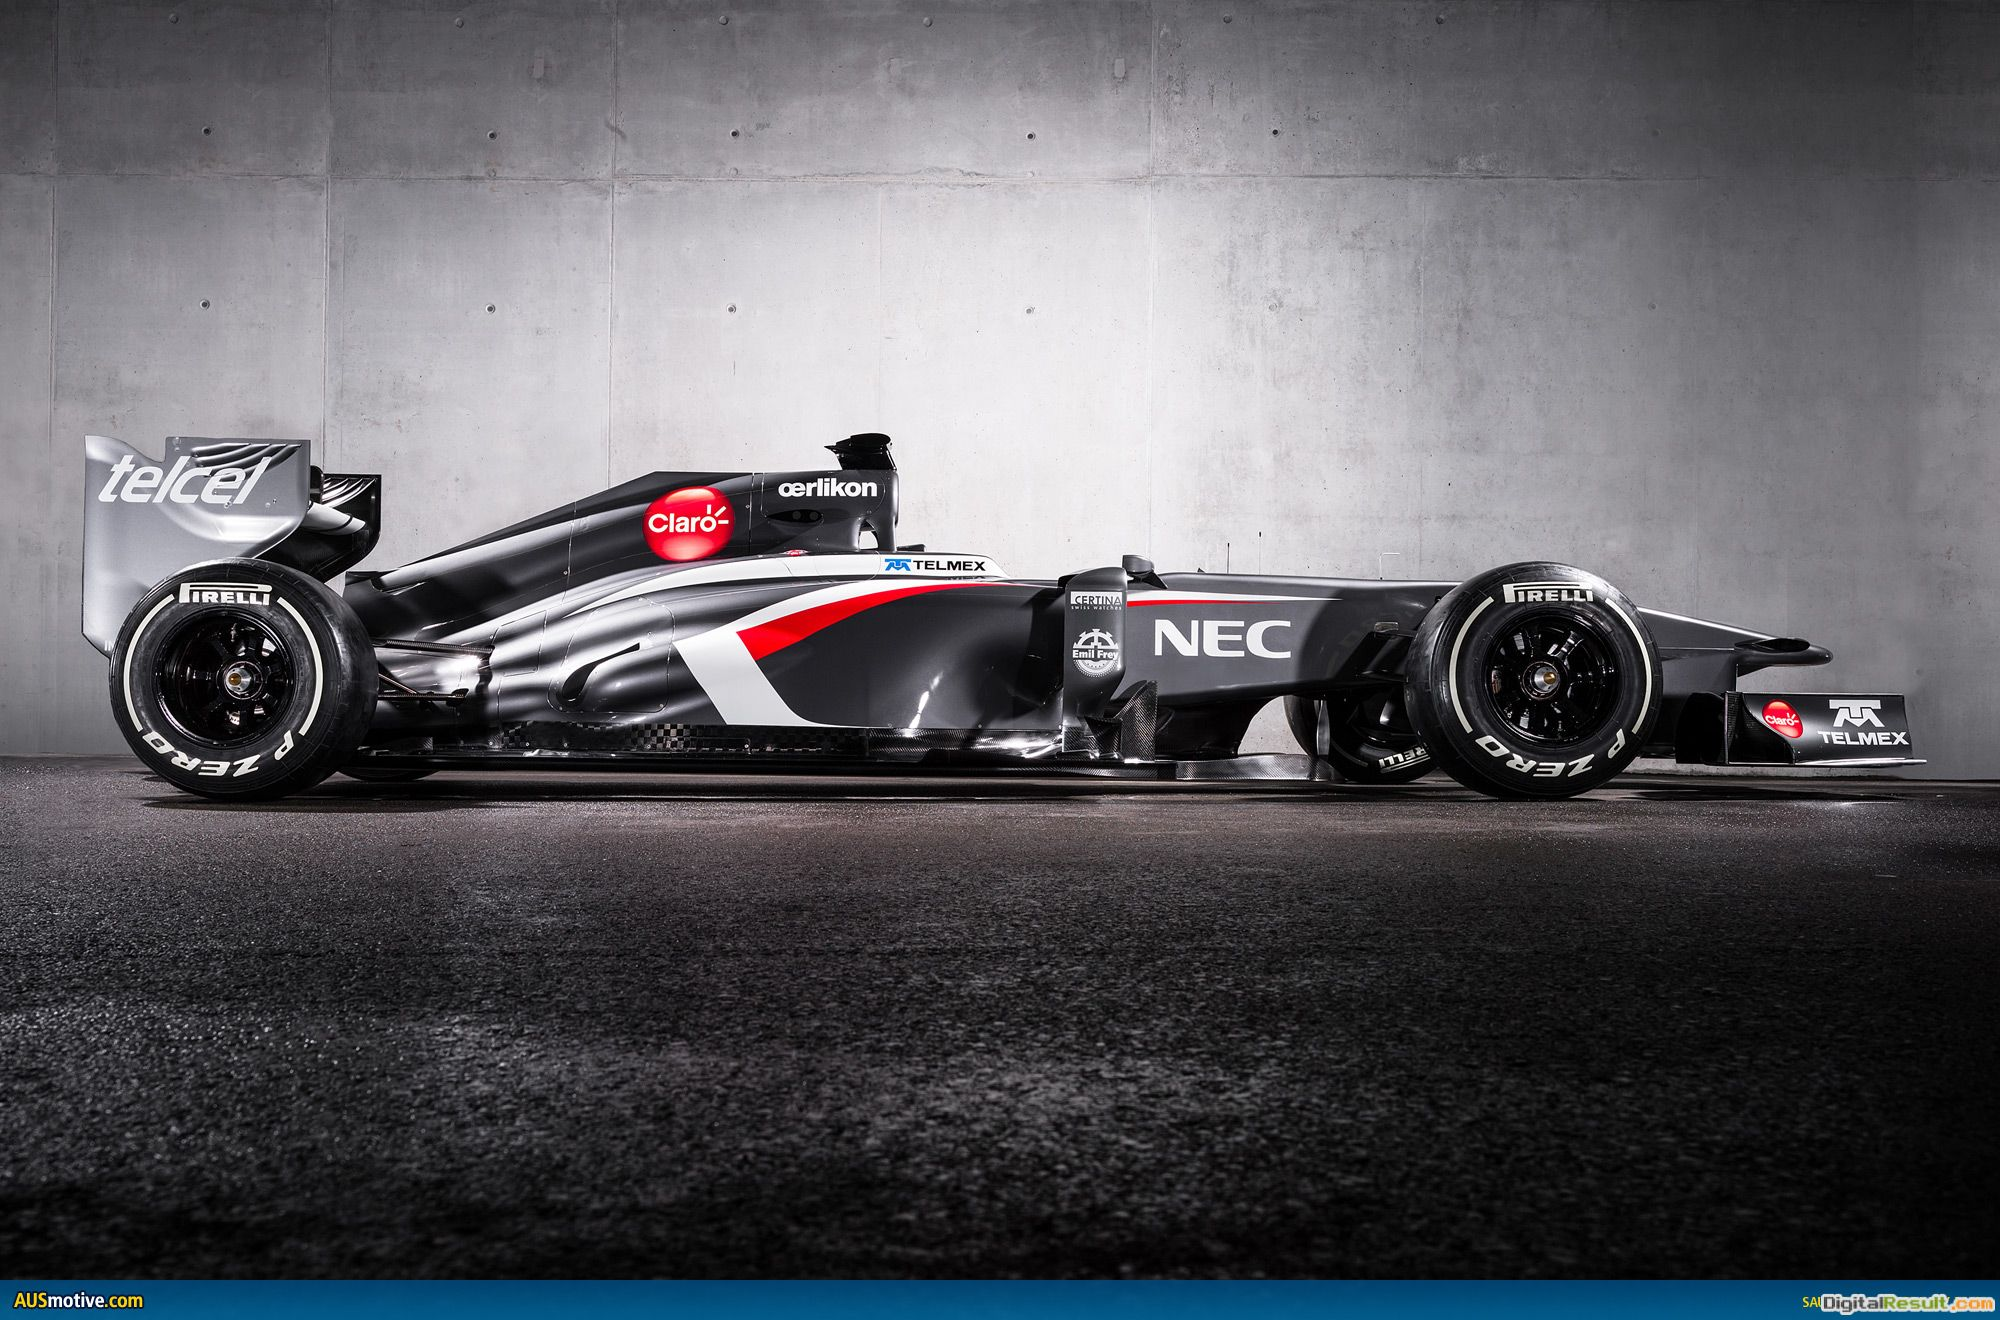 The Sauber F1 team launches the new Sauber C32 Ferrari 1409